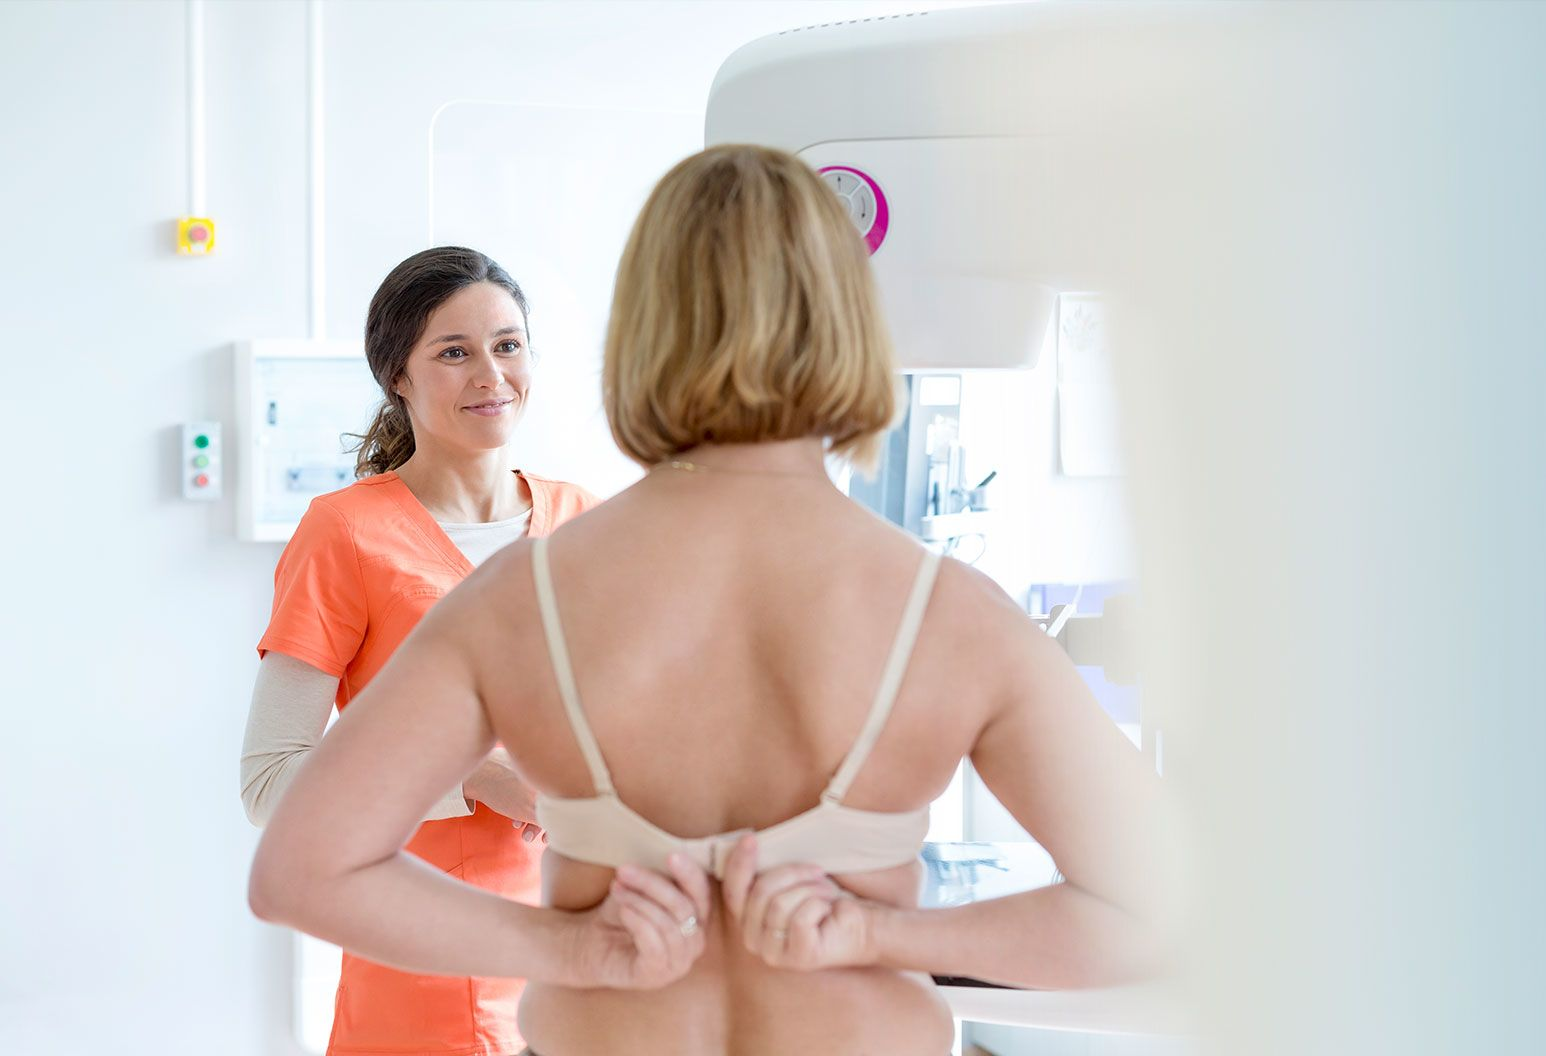 A blonde woman, unhooks her bra as she faces another female in an orange work outfit. The female gives a comforting smile to the woman who is standing in front of a mammogram imaging machine.